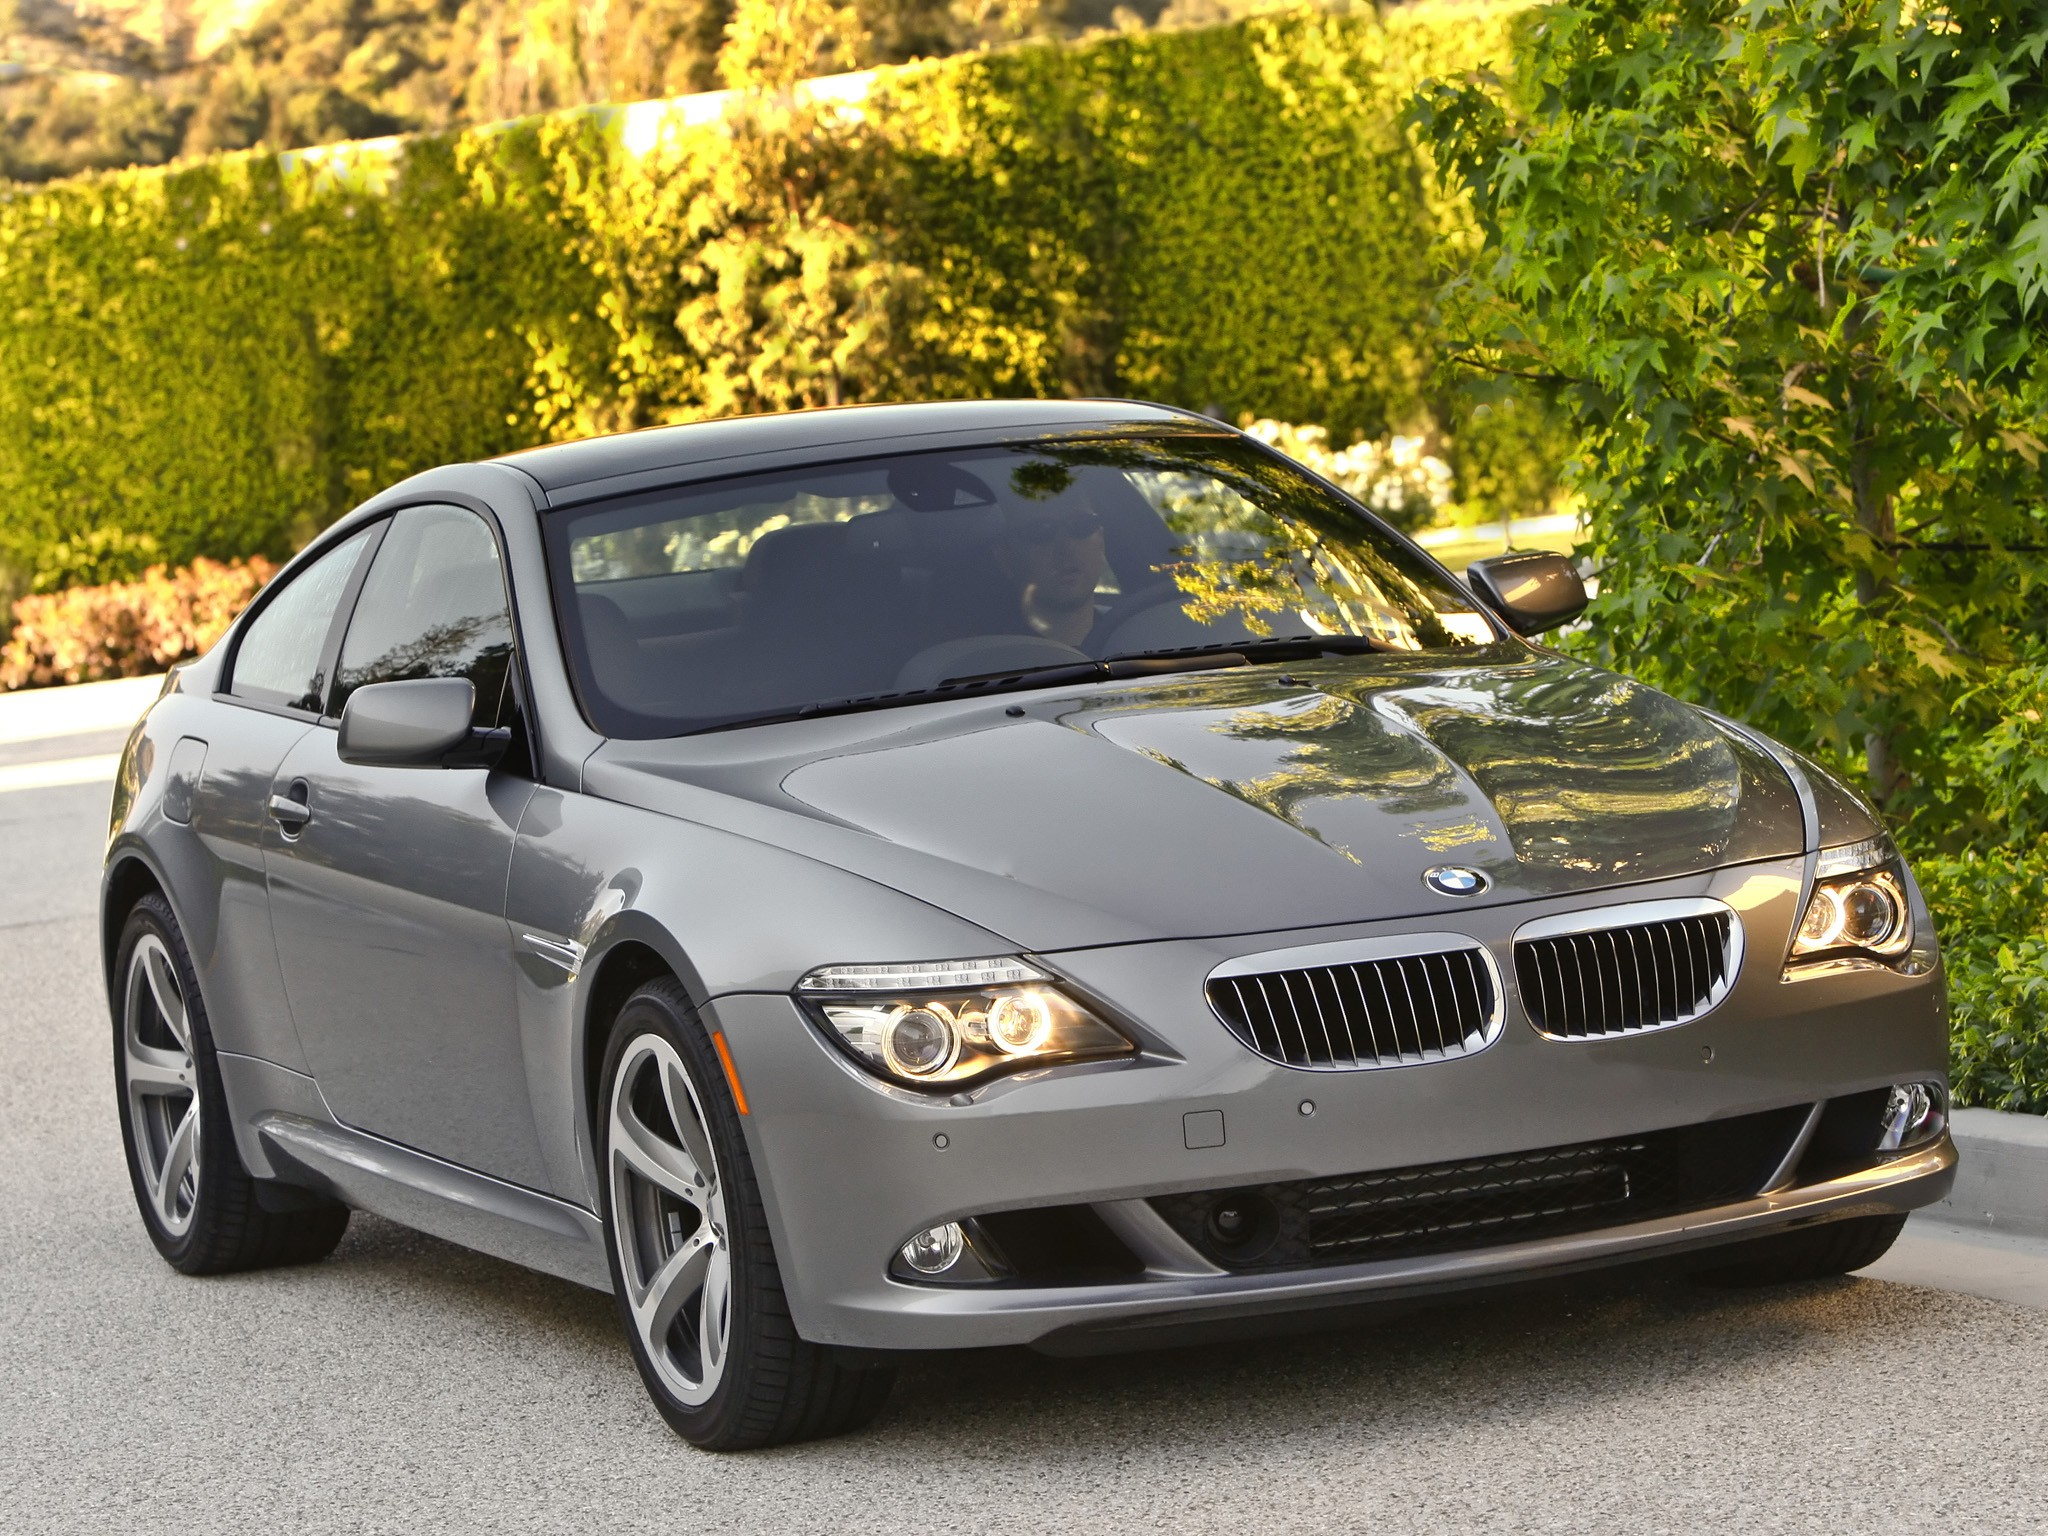 2010 Bmw 650i >> BMW 6 Series Coupe (E63) specs & photos - 2007, 2008, 2009, 2010, 2011 - autoevolution